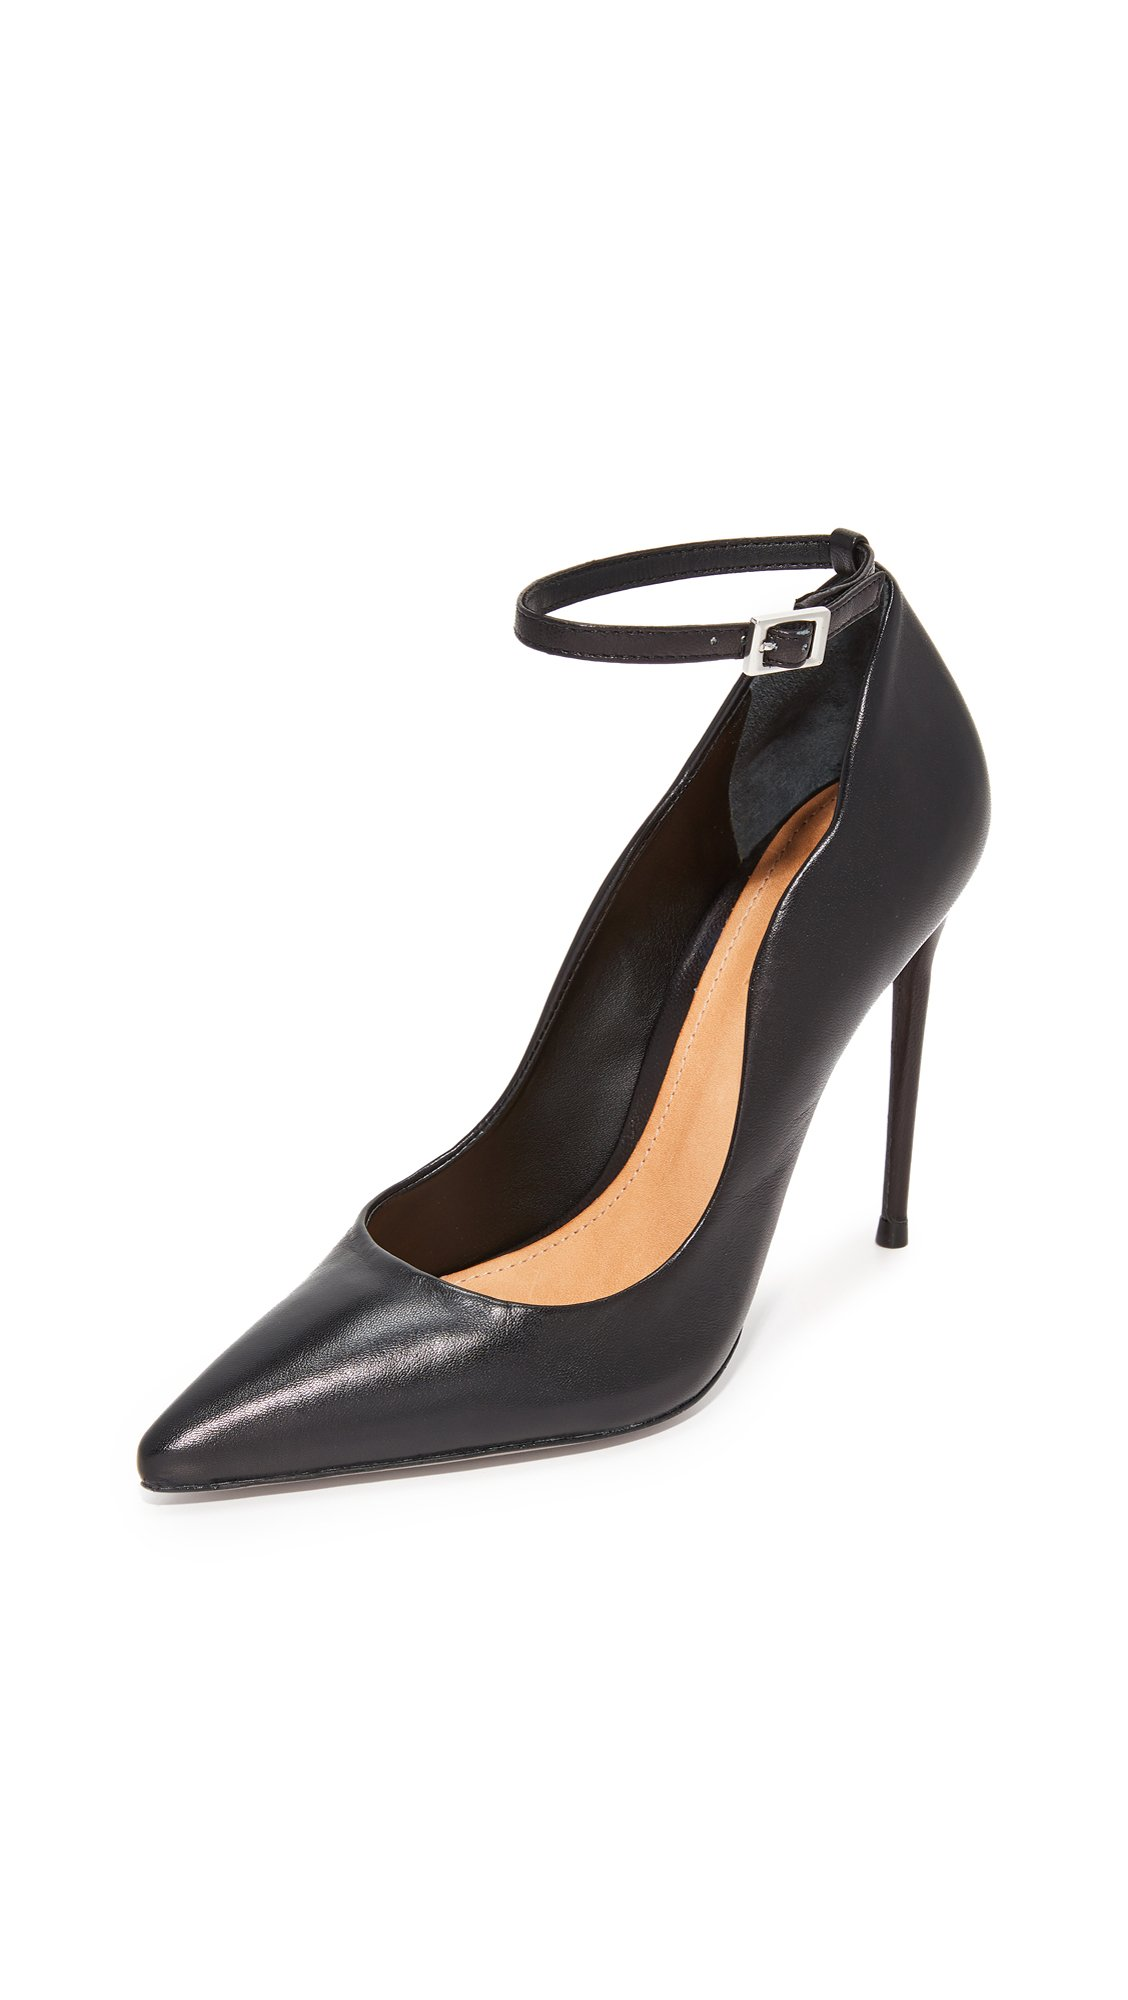 Schutz Women's Thaynara Ankle Strap Pointed Heels, Black, 5.5 B(M) US